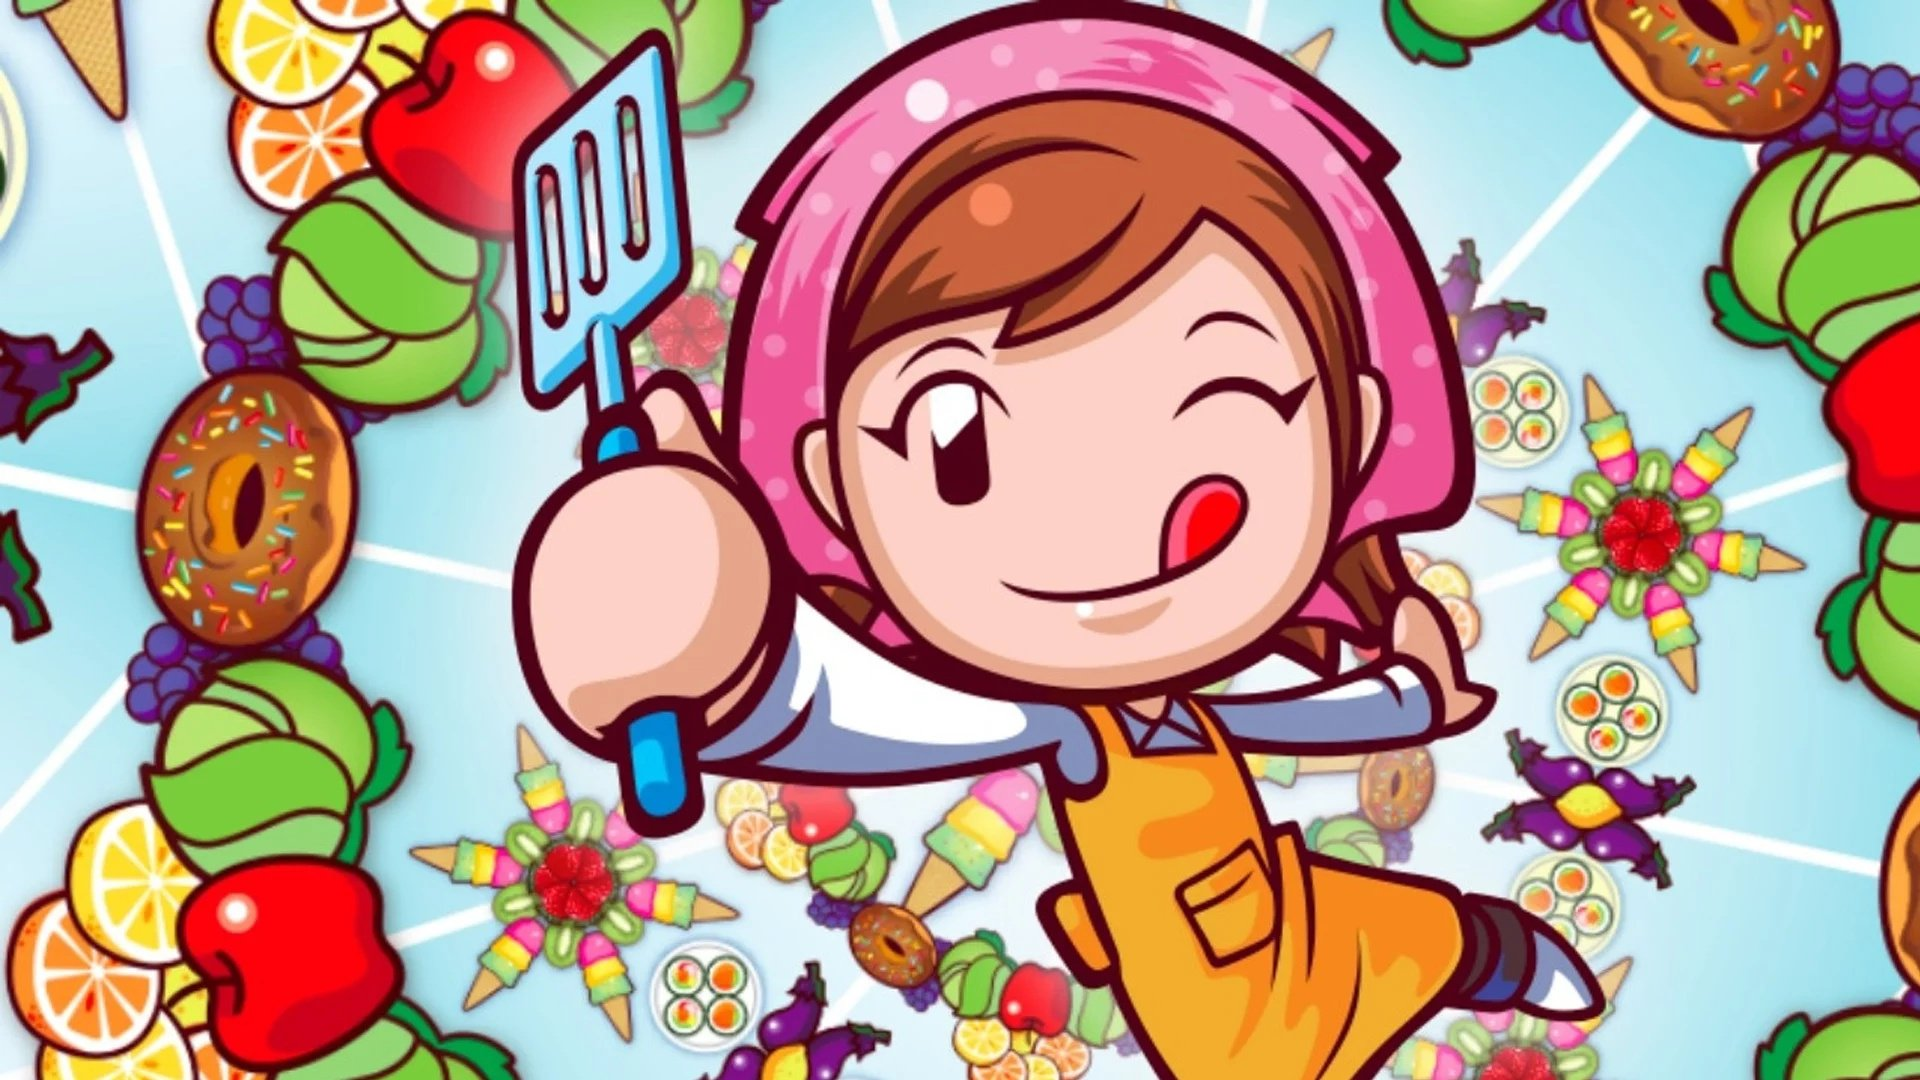 Cooking Mama was one of the biggest inspirations behind the project.